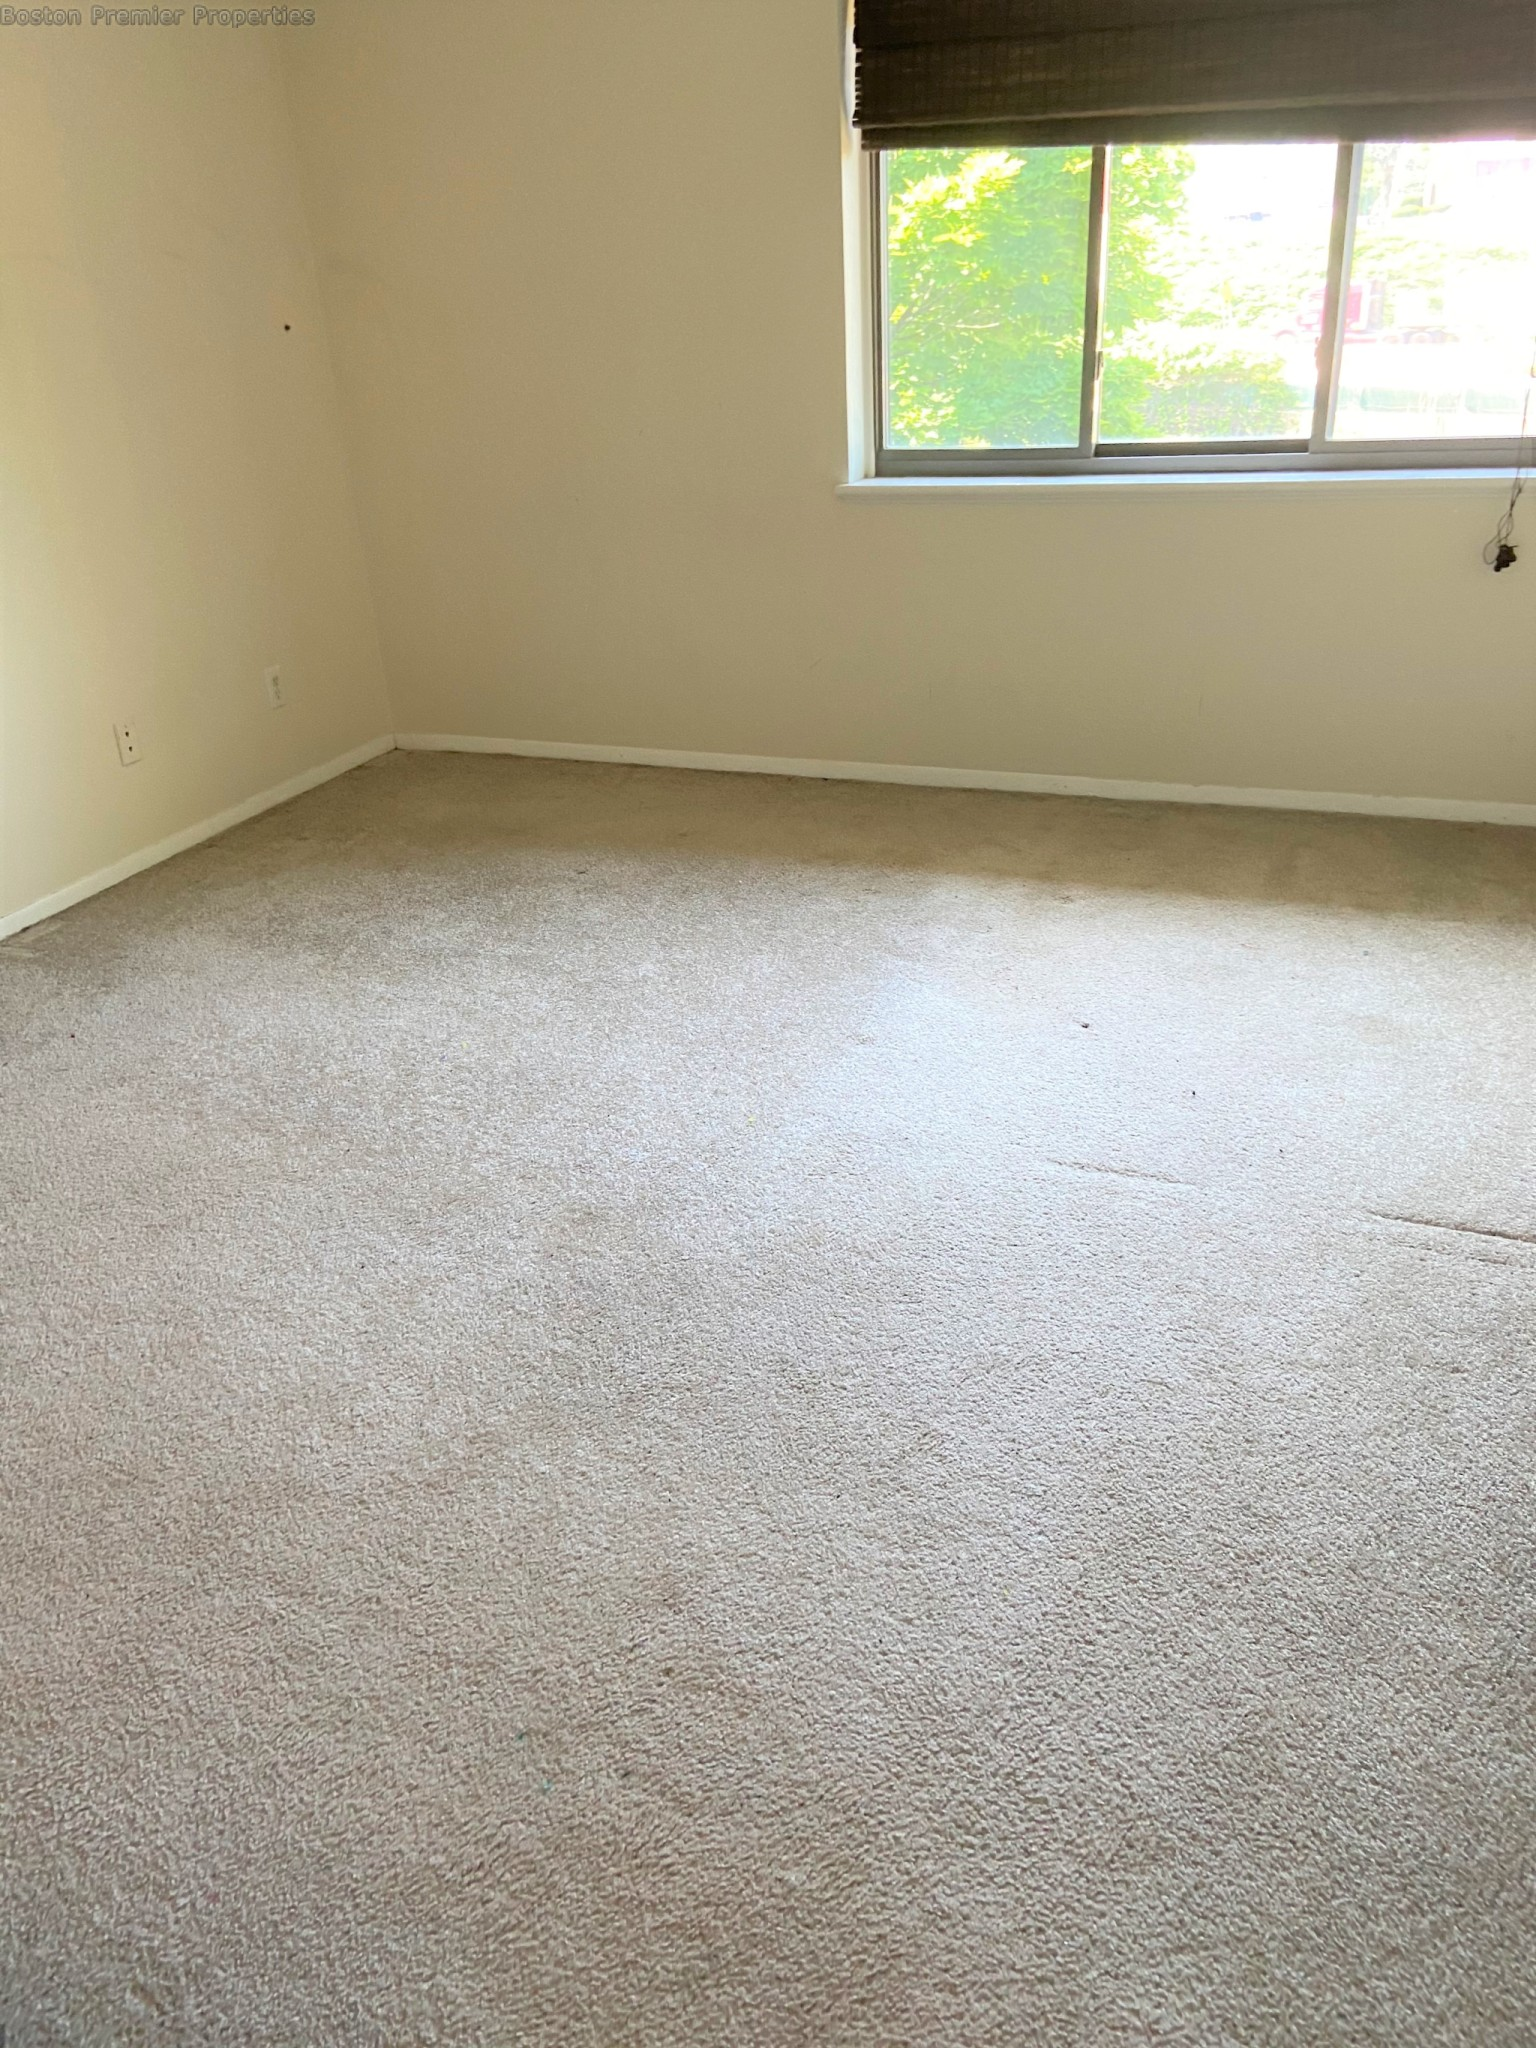 2 Beds, 1 Bath apartment in Braintree for $2,000